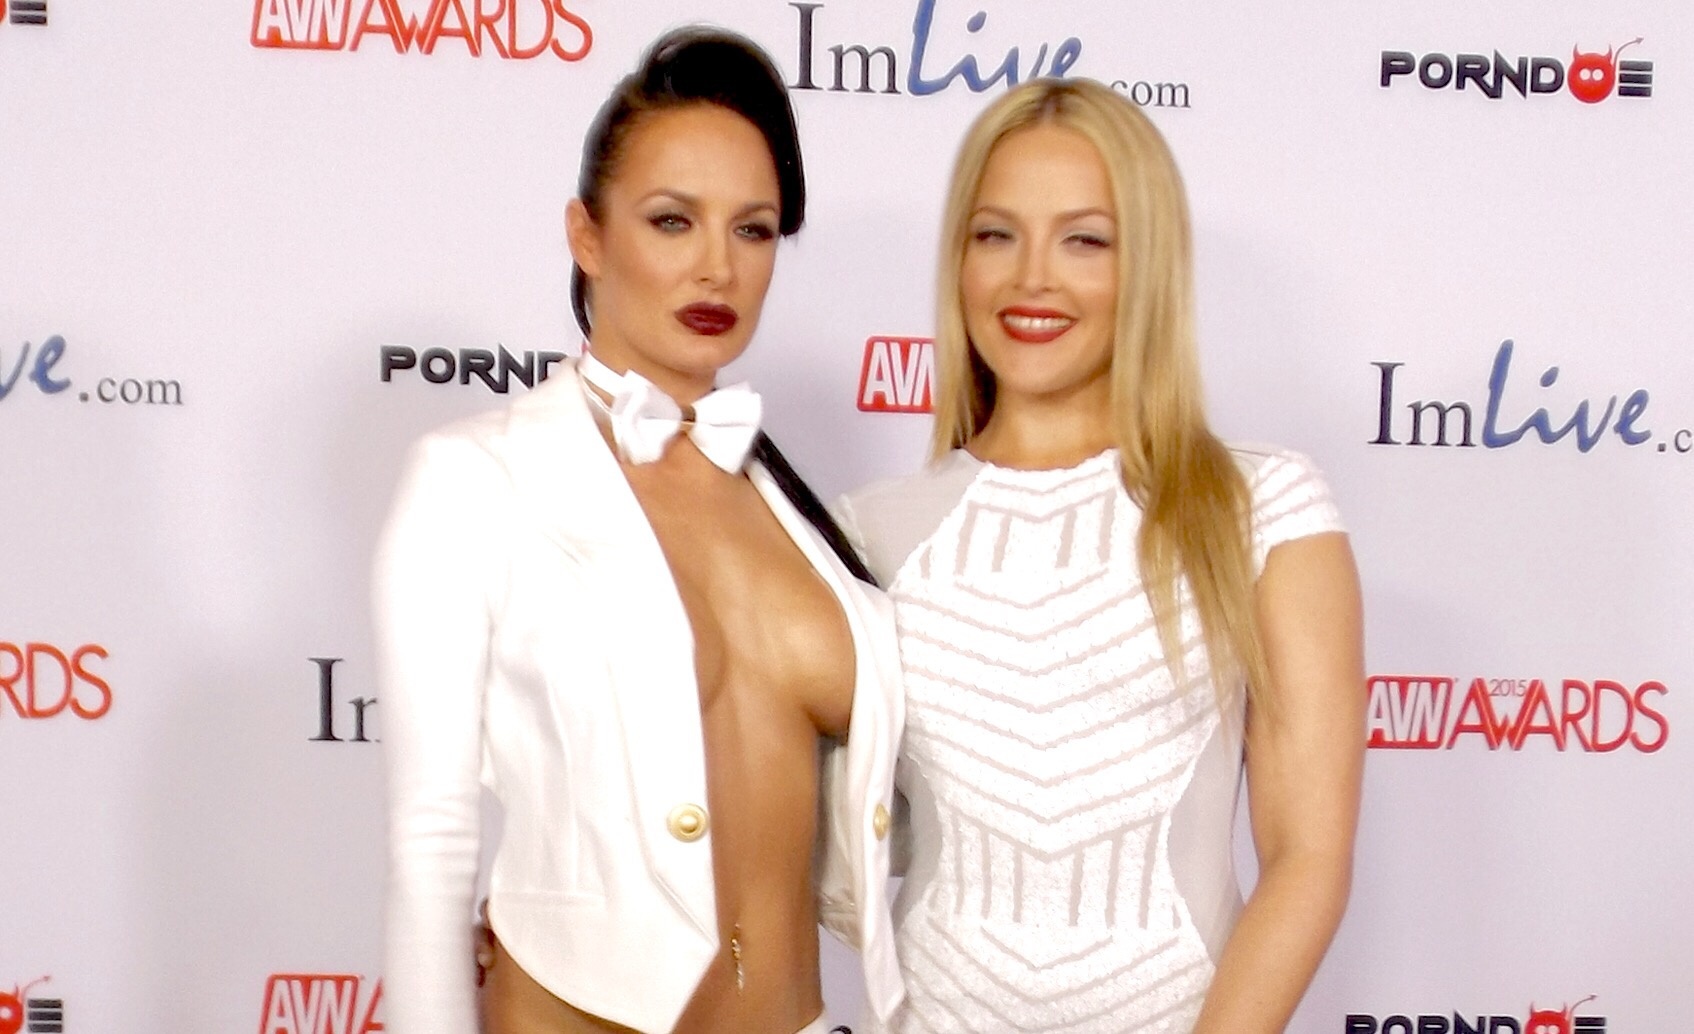 AVN Awards 2015 Red Carpet PHOTOS (Part 5)